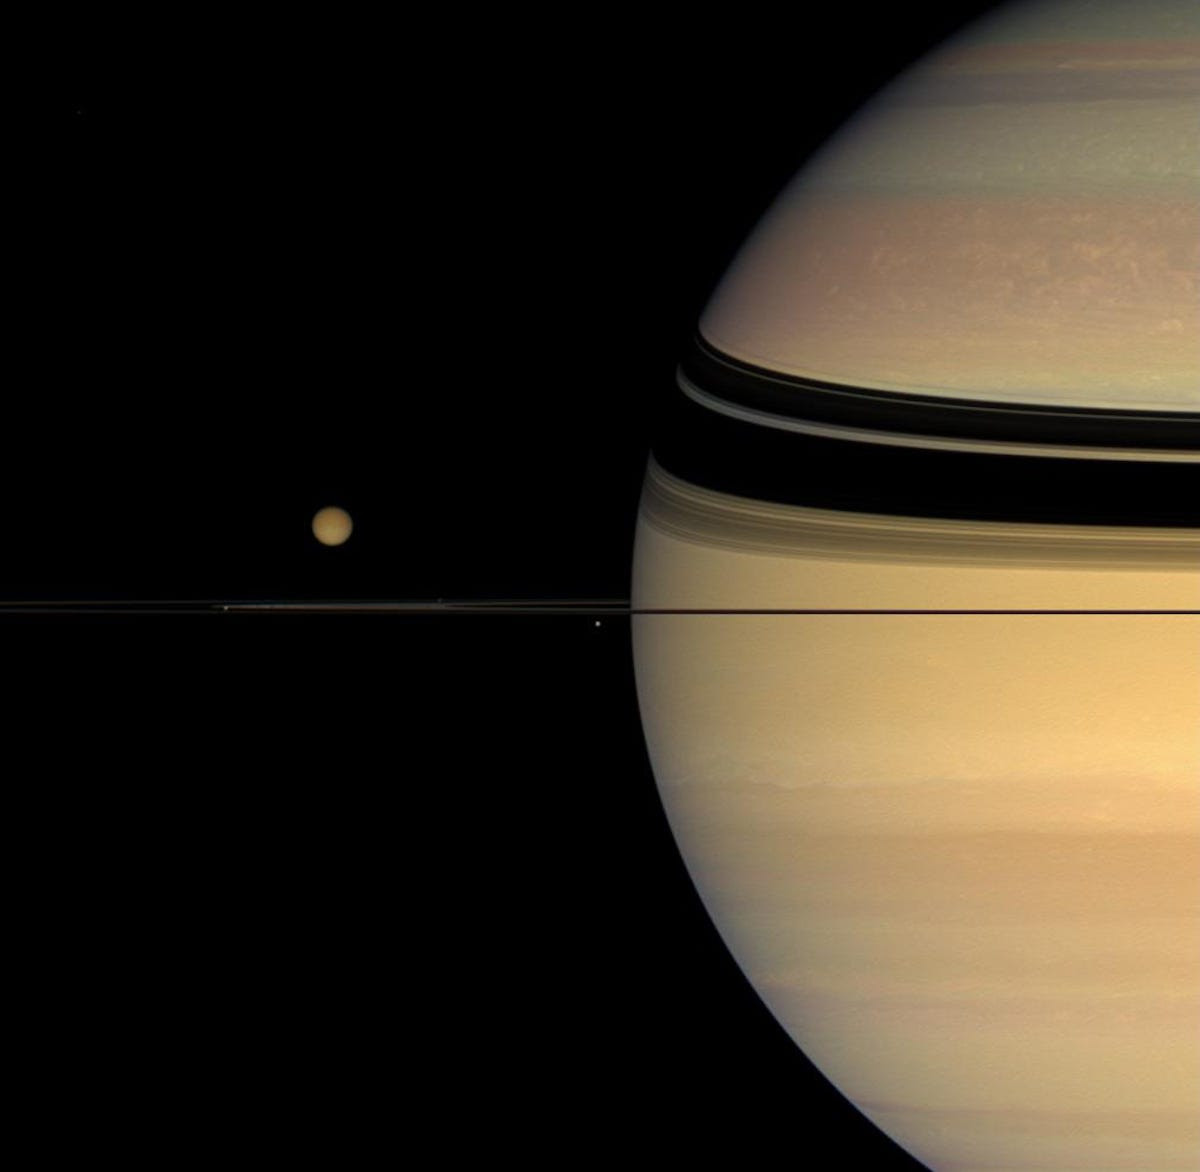 Titan, Saturn's largest moon (left), is the size of planet Mercury. Cassini used its gravity to change its orbit and visit targets of interest.